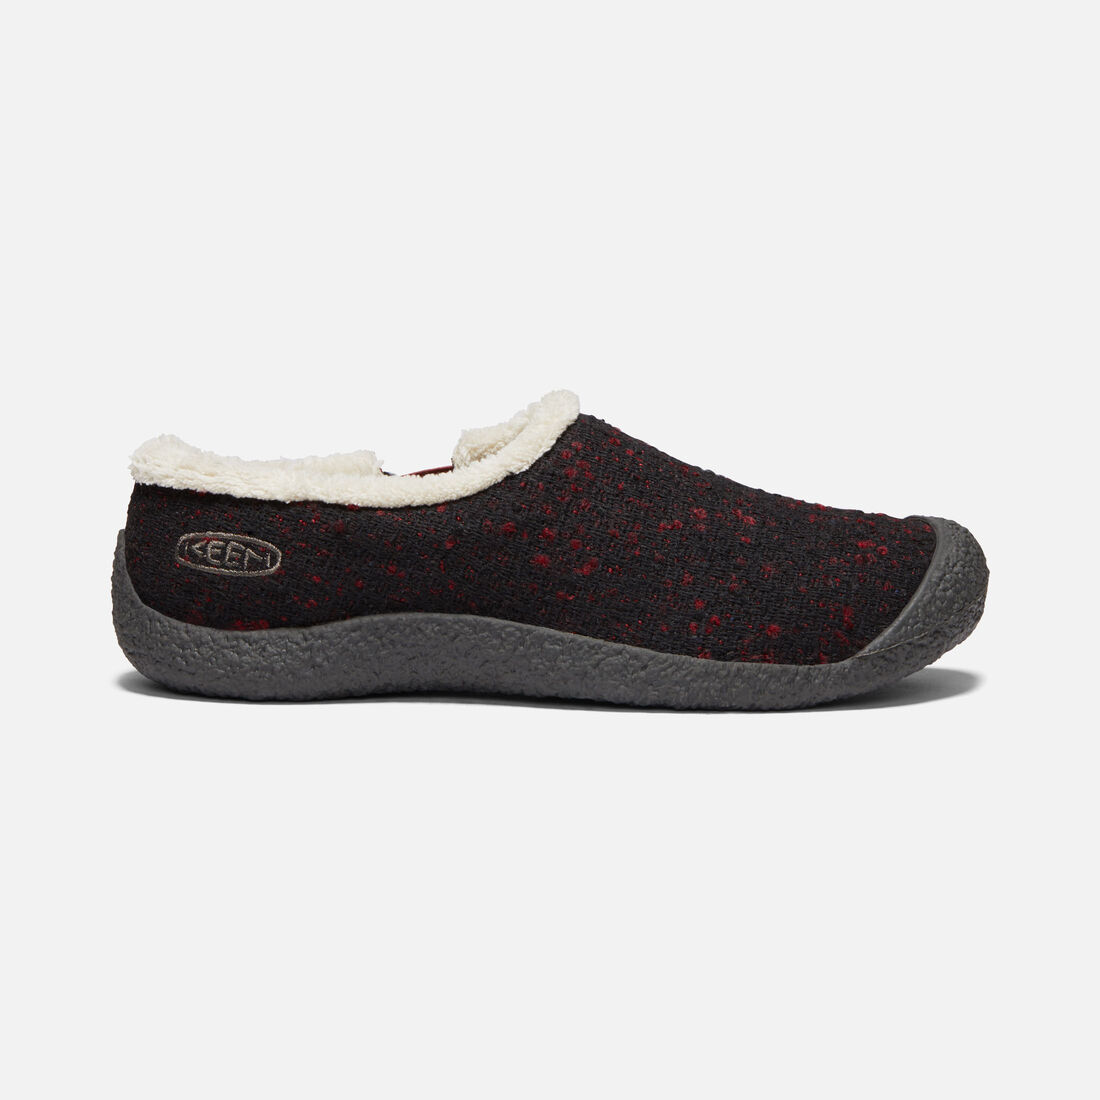 0d9a6f987a4 Women s Howser Wool Slide in FIRED BRICK RAVEN - large view.